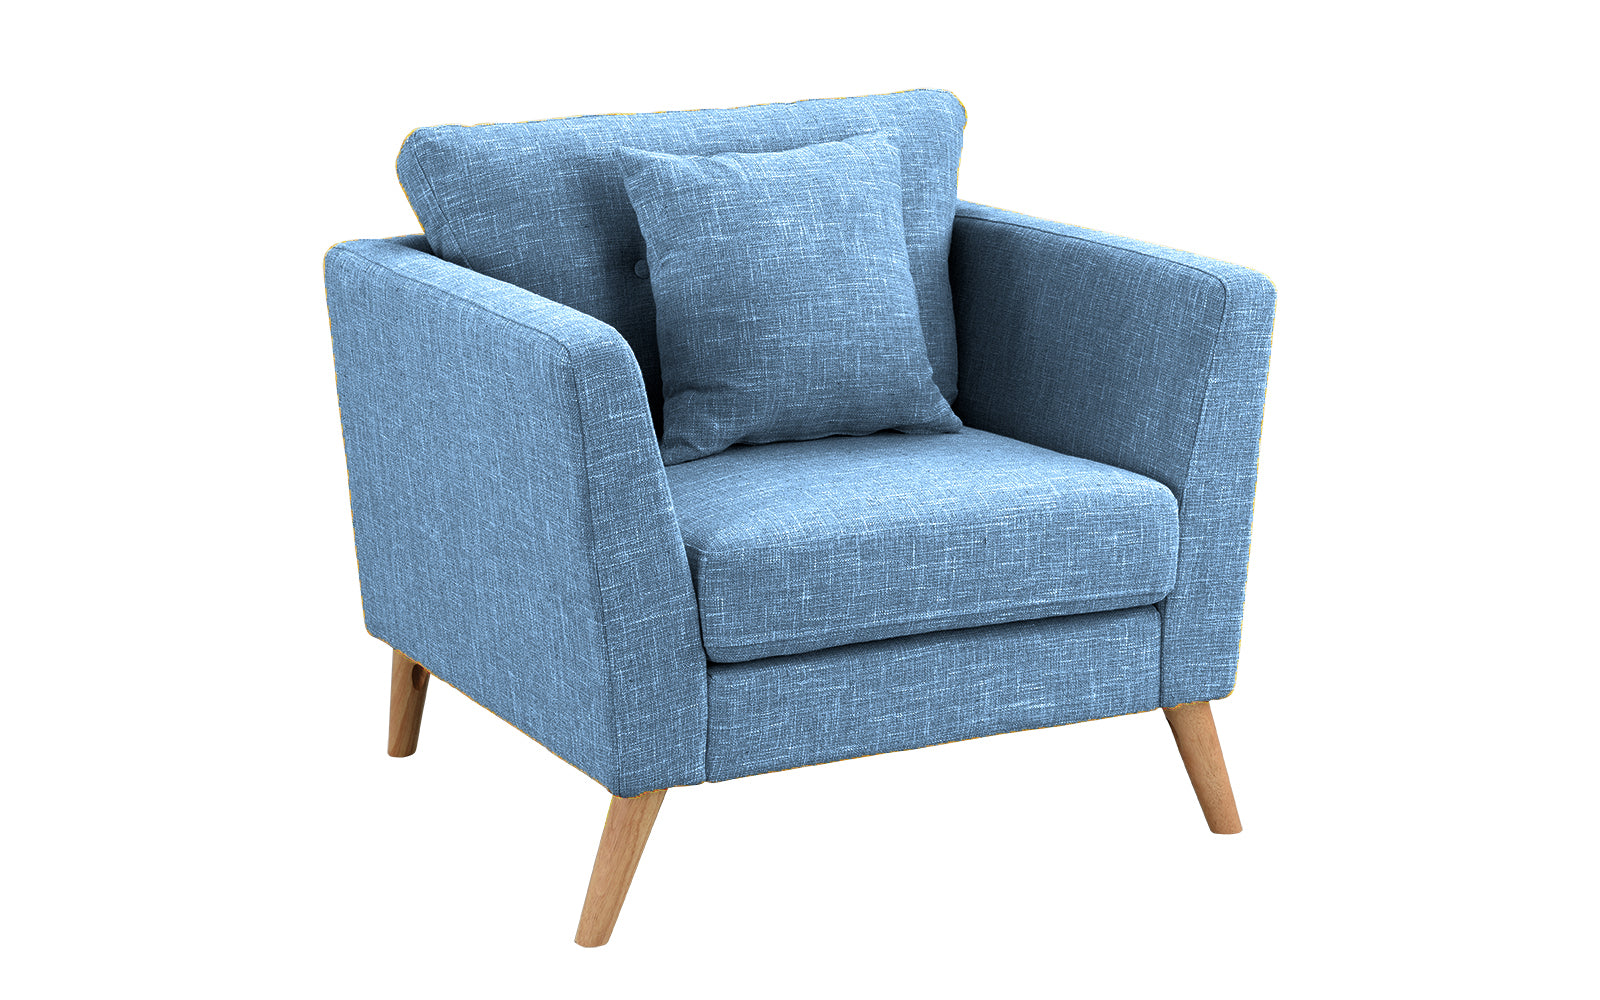 Fantastic Lola Mid Century Arm Chair With Wooden Legs Caraccident5 Cool Chair Designs And Ideas Caraccident5Info